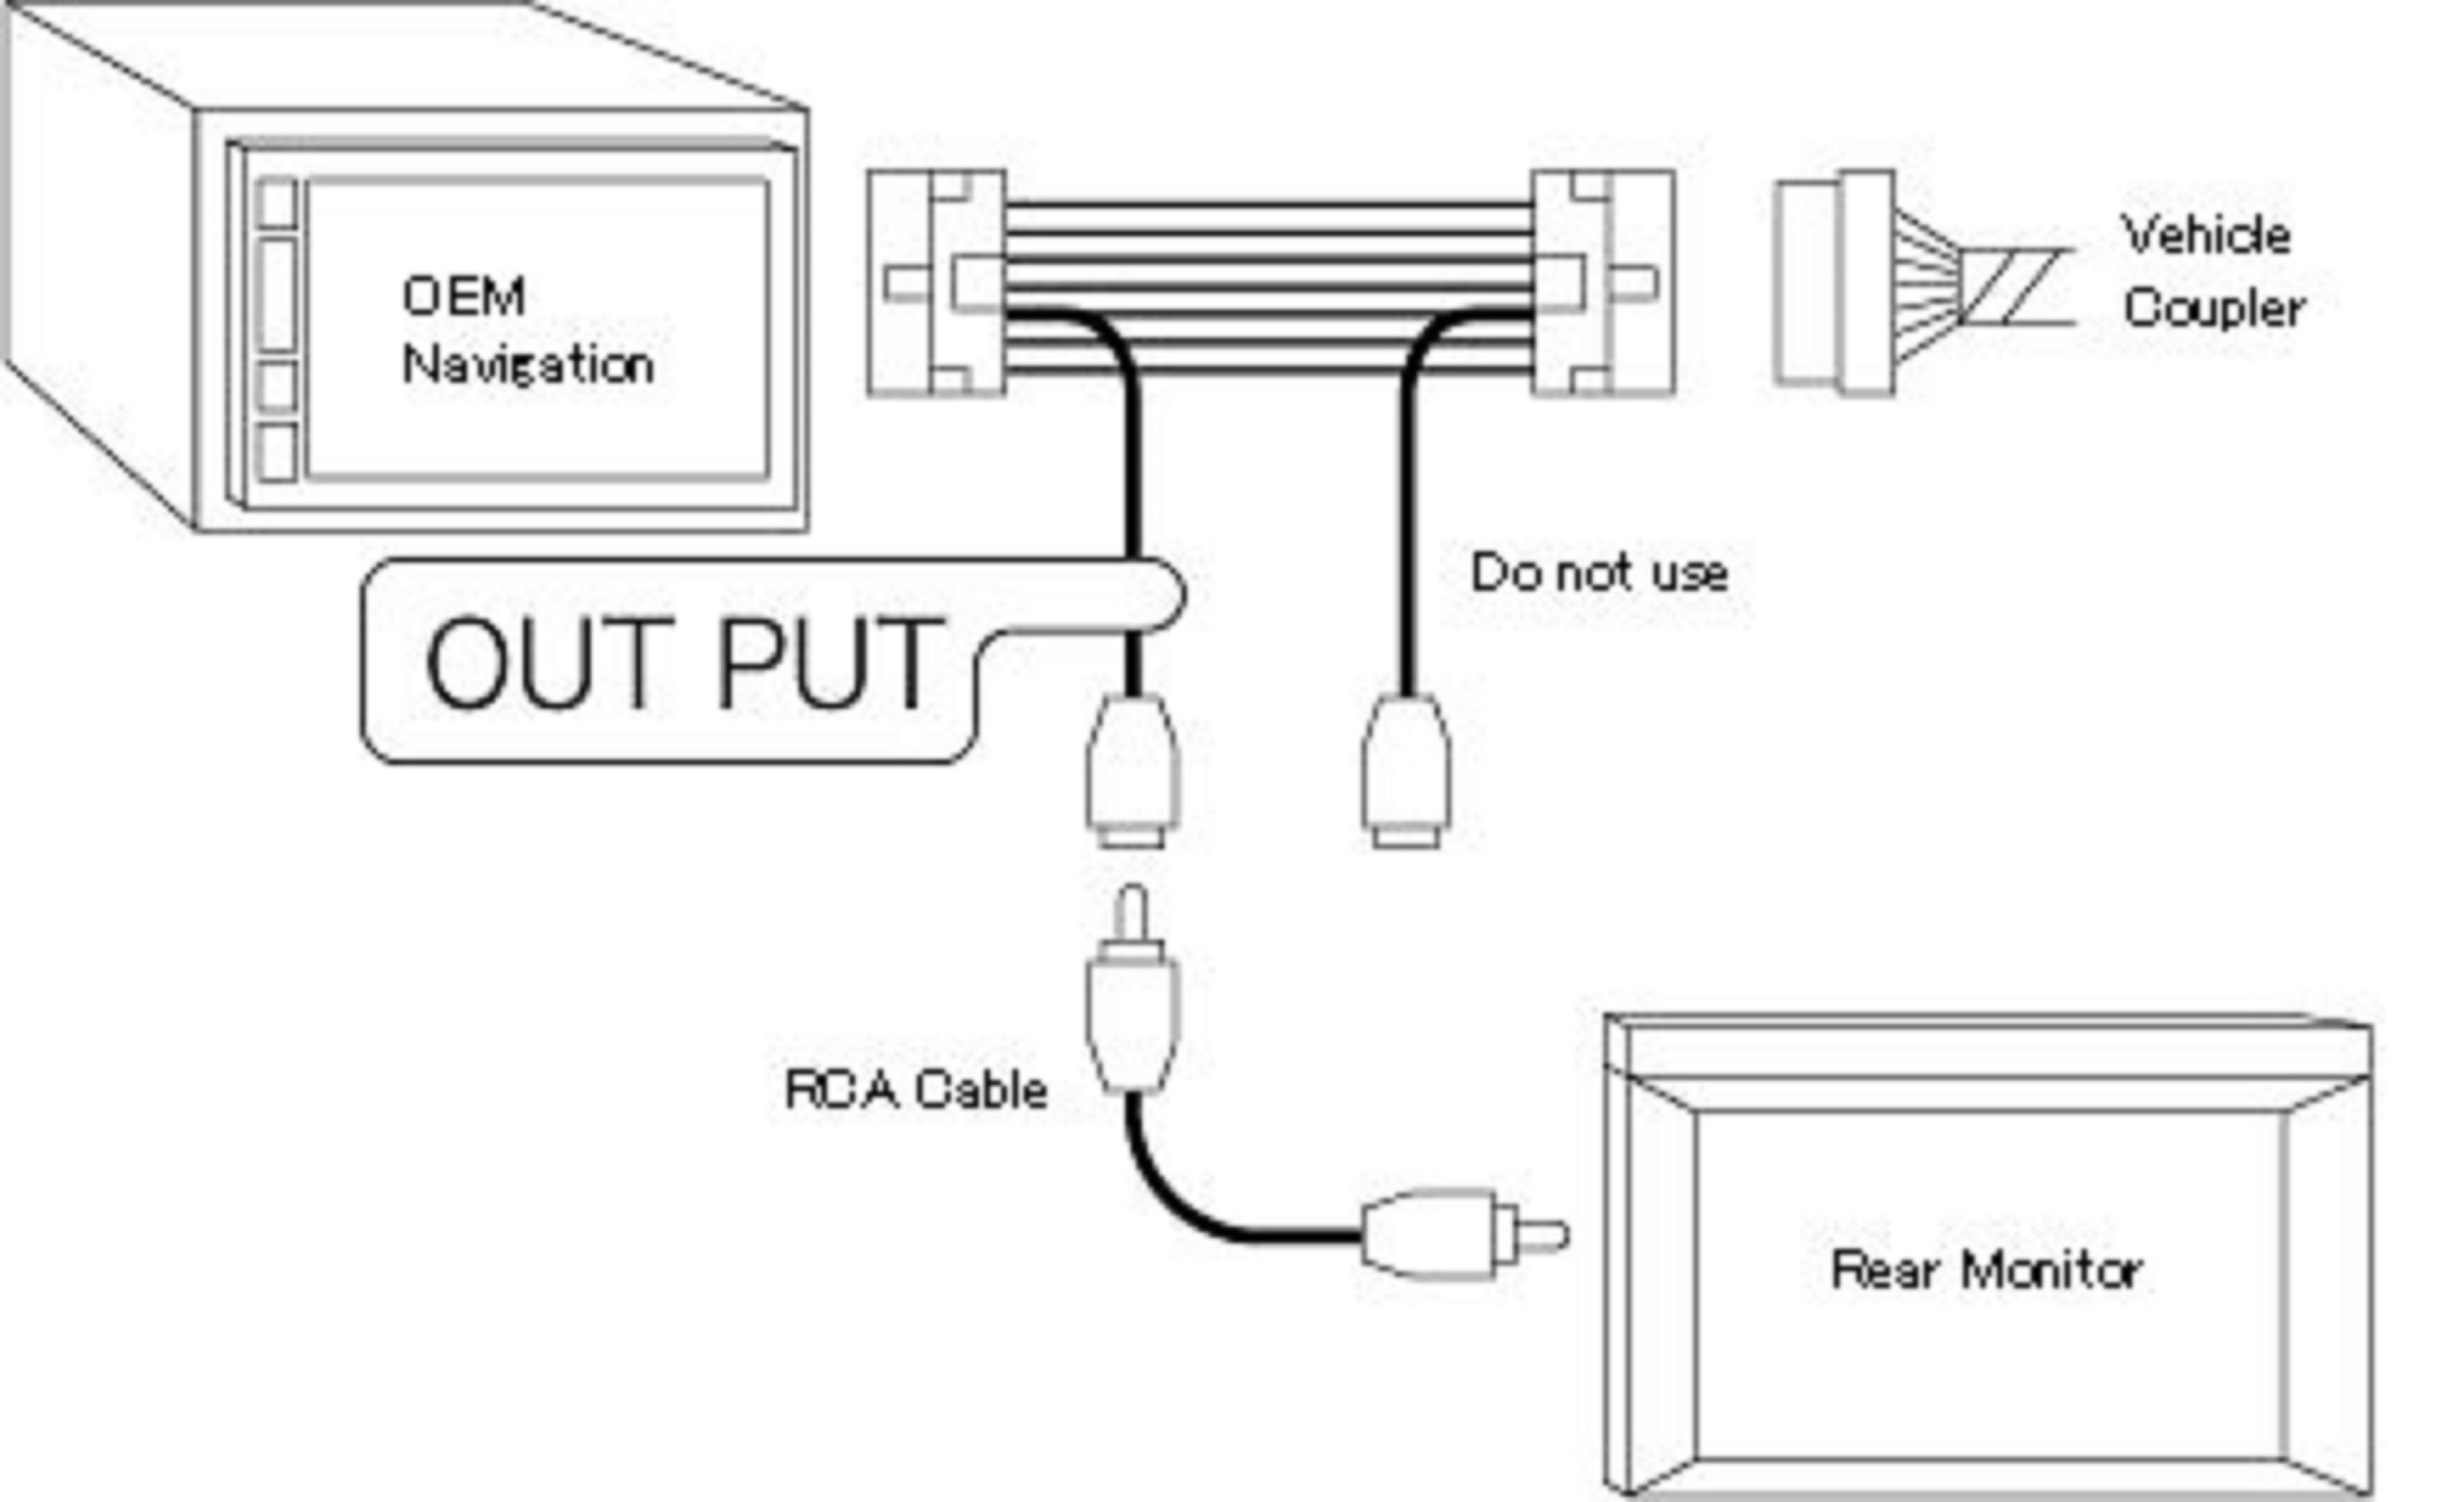 [DIAGRAM_4FR]  HOW TO: Install a backup camera with a Bose navigation system   Page 2    Mazda 6 Forums   Denso Backup Camera Wiring Diagram      Mazda 6 Forums